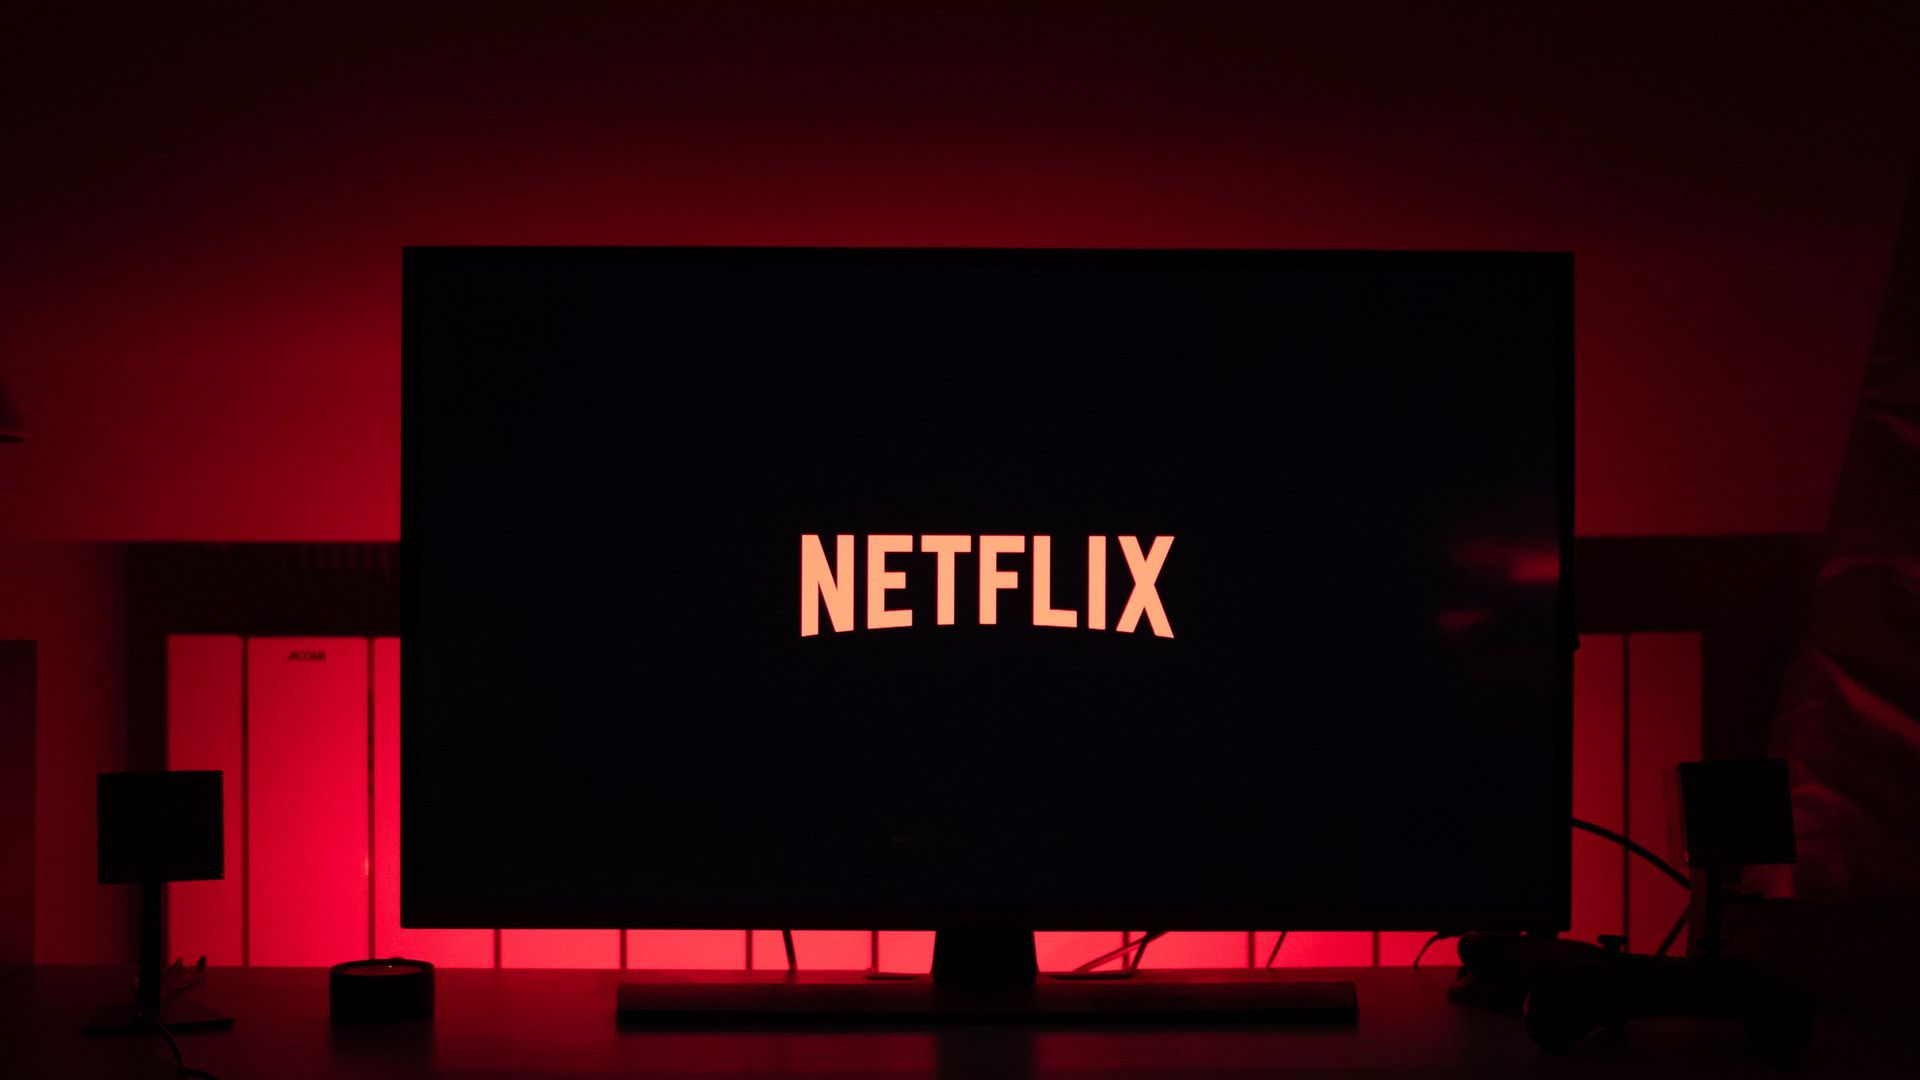 Come guardare Film e serie TV gratis su Netflix